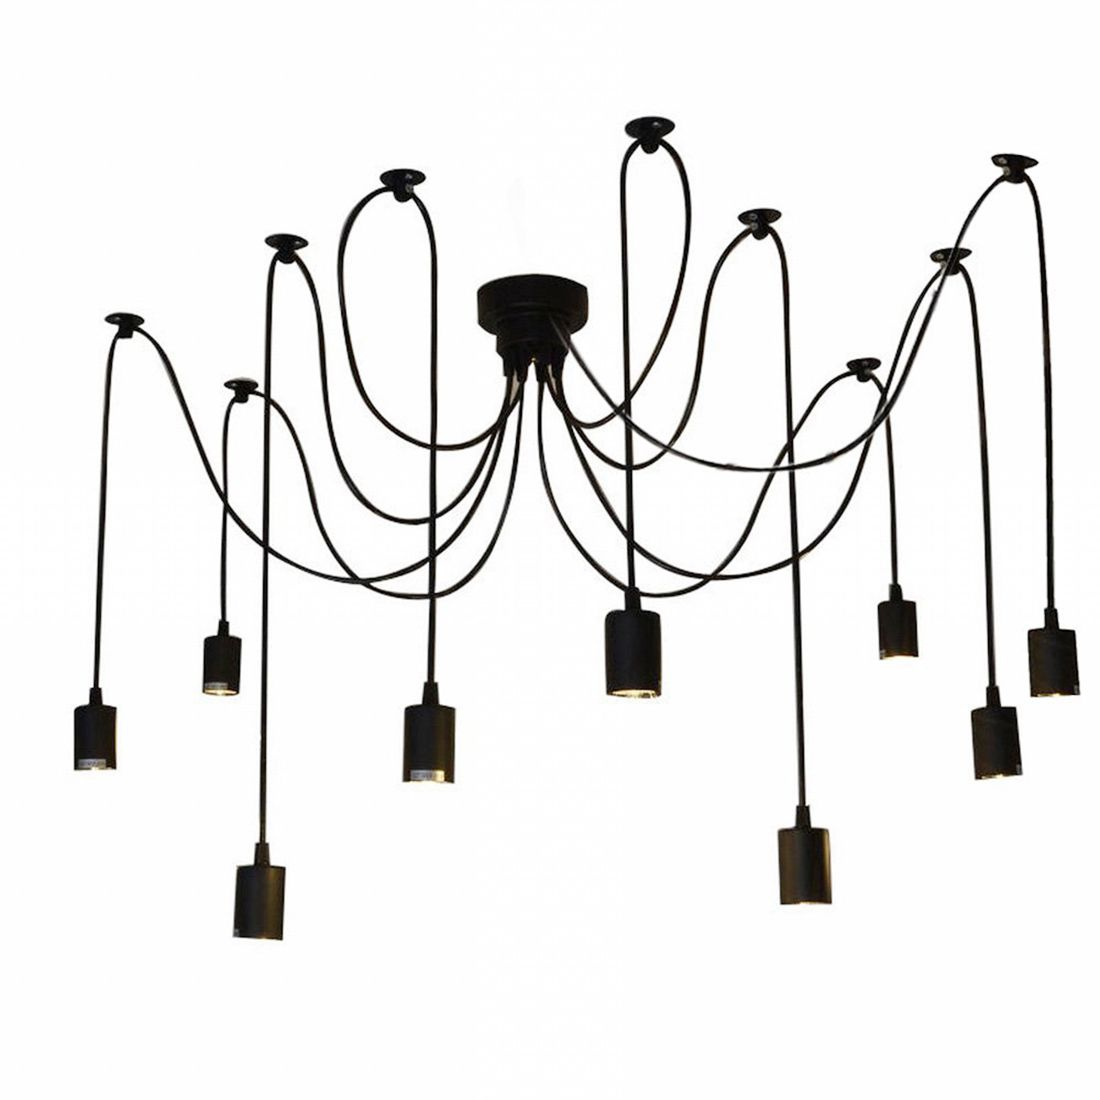 9 Lights E27 DIY Ceiling Spider Pendant Lamp Shade Light Antique Classic Adjustable Retro Chandelier Dining Hall Bedroom Home Li 10 lights creative fairy vintage edison lamp shade multiple adjustable diy ceiling spider pendent lighting chandelier 10 ligh